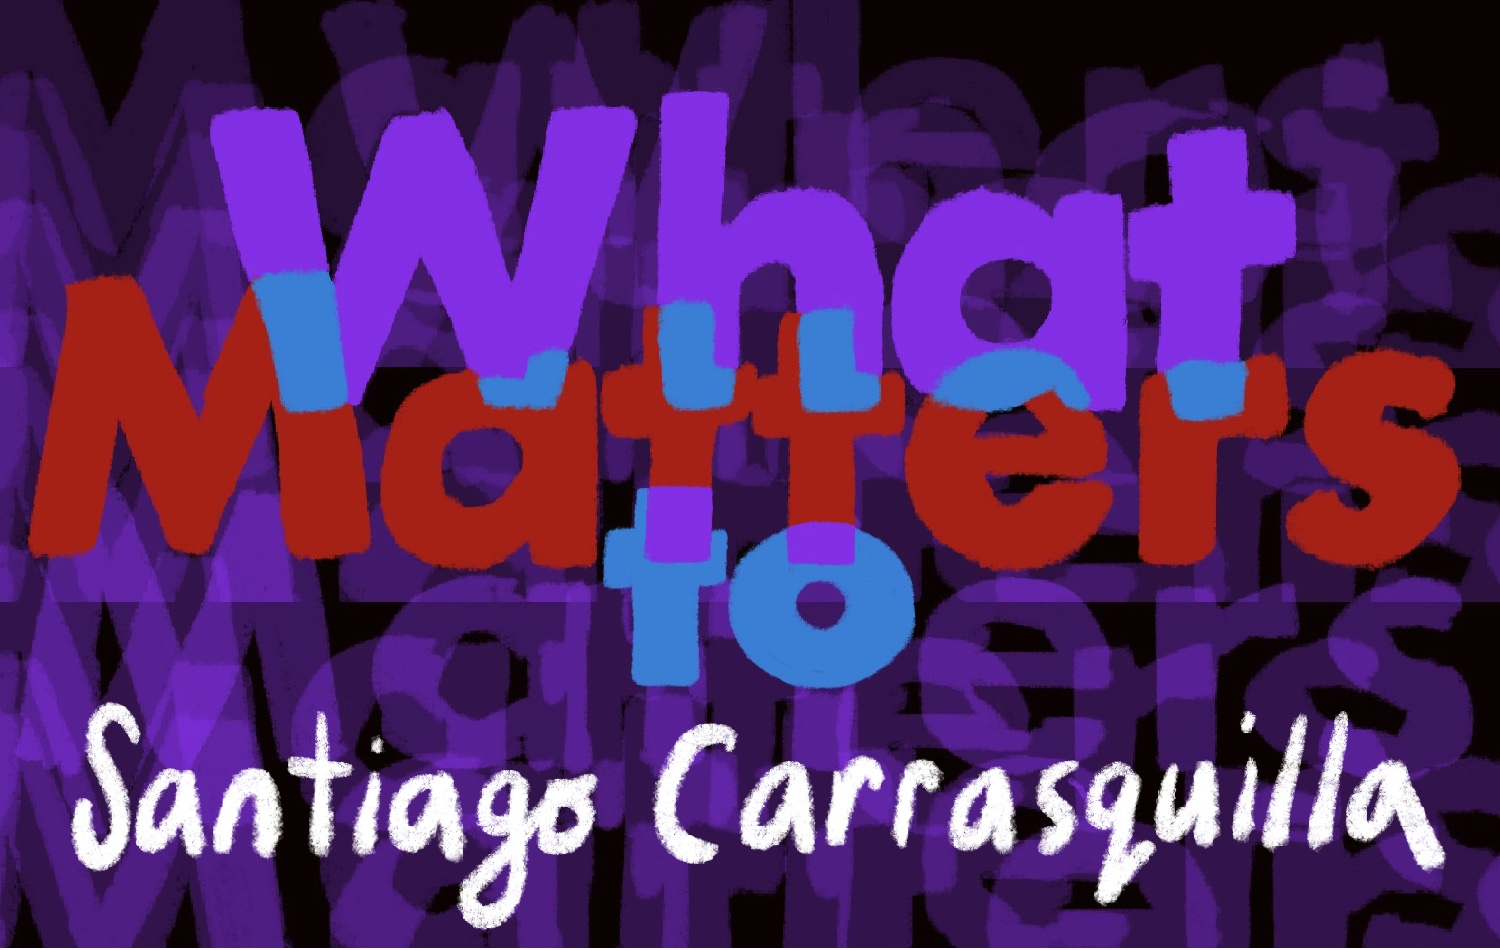 Thumbnail for Santiago Carrasquilla on the Prize of Process and the Catharsis in Crying